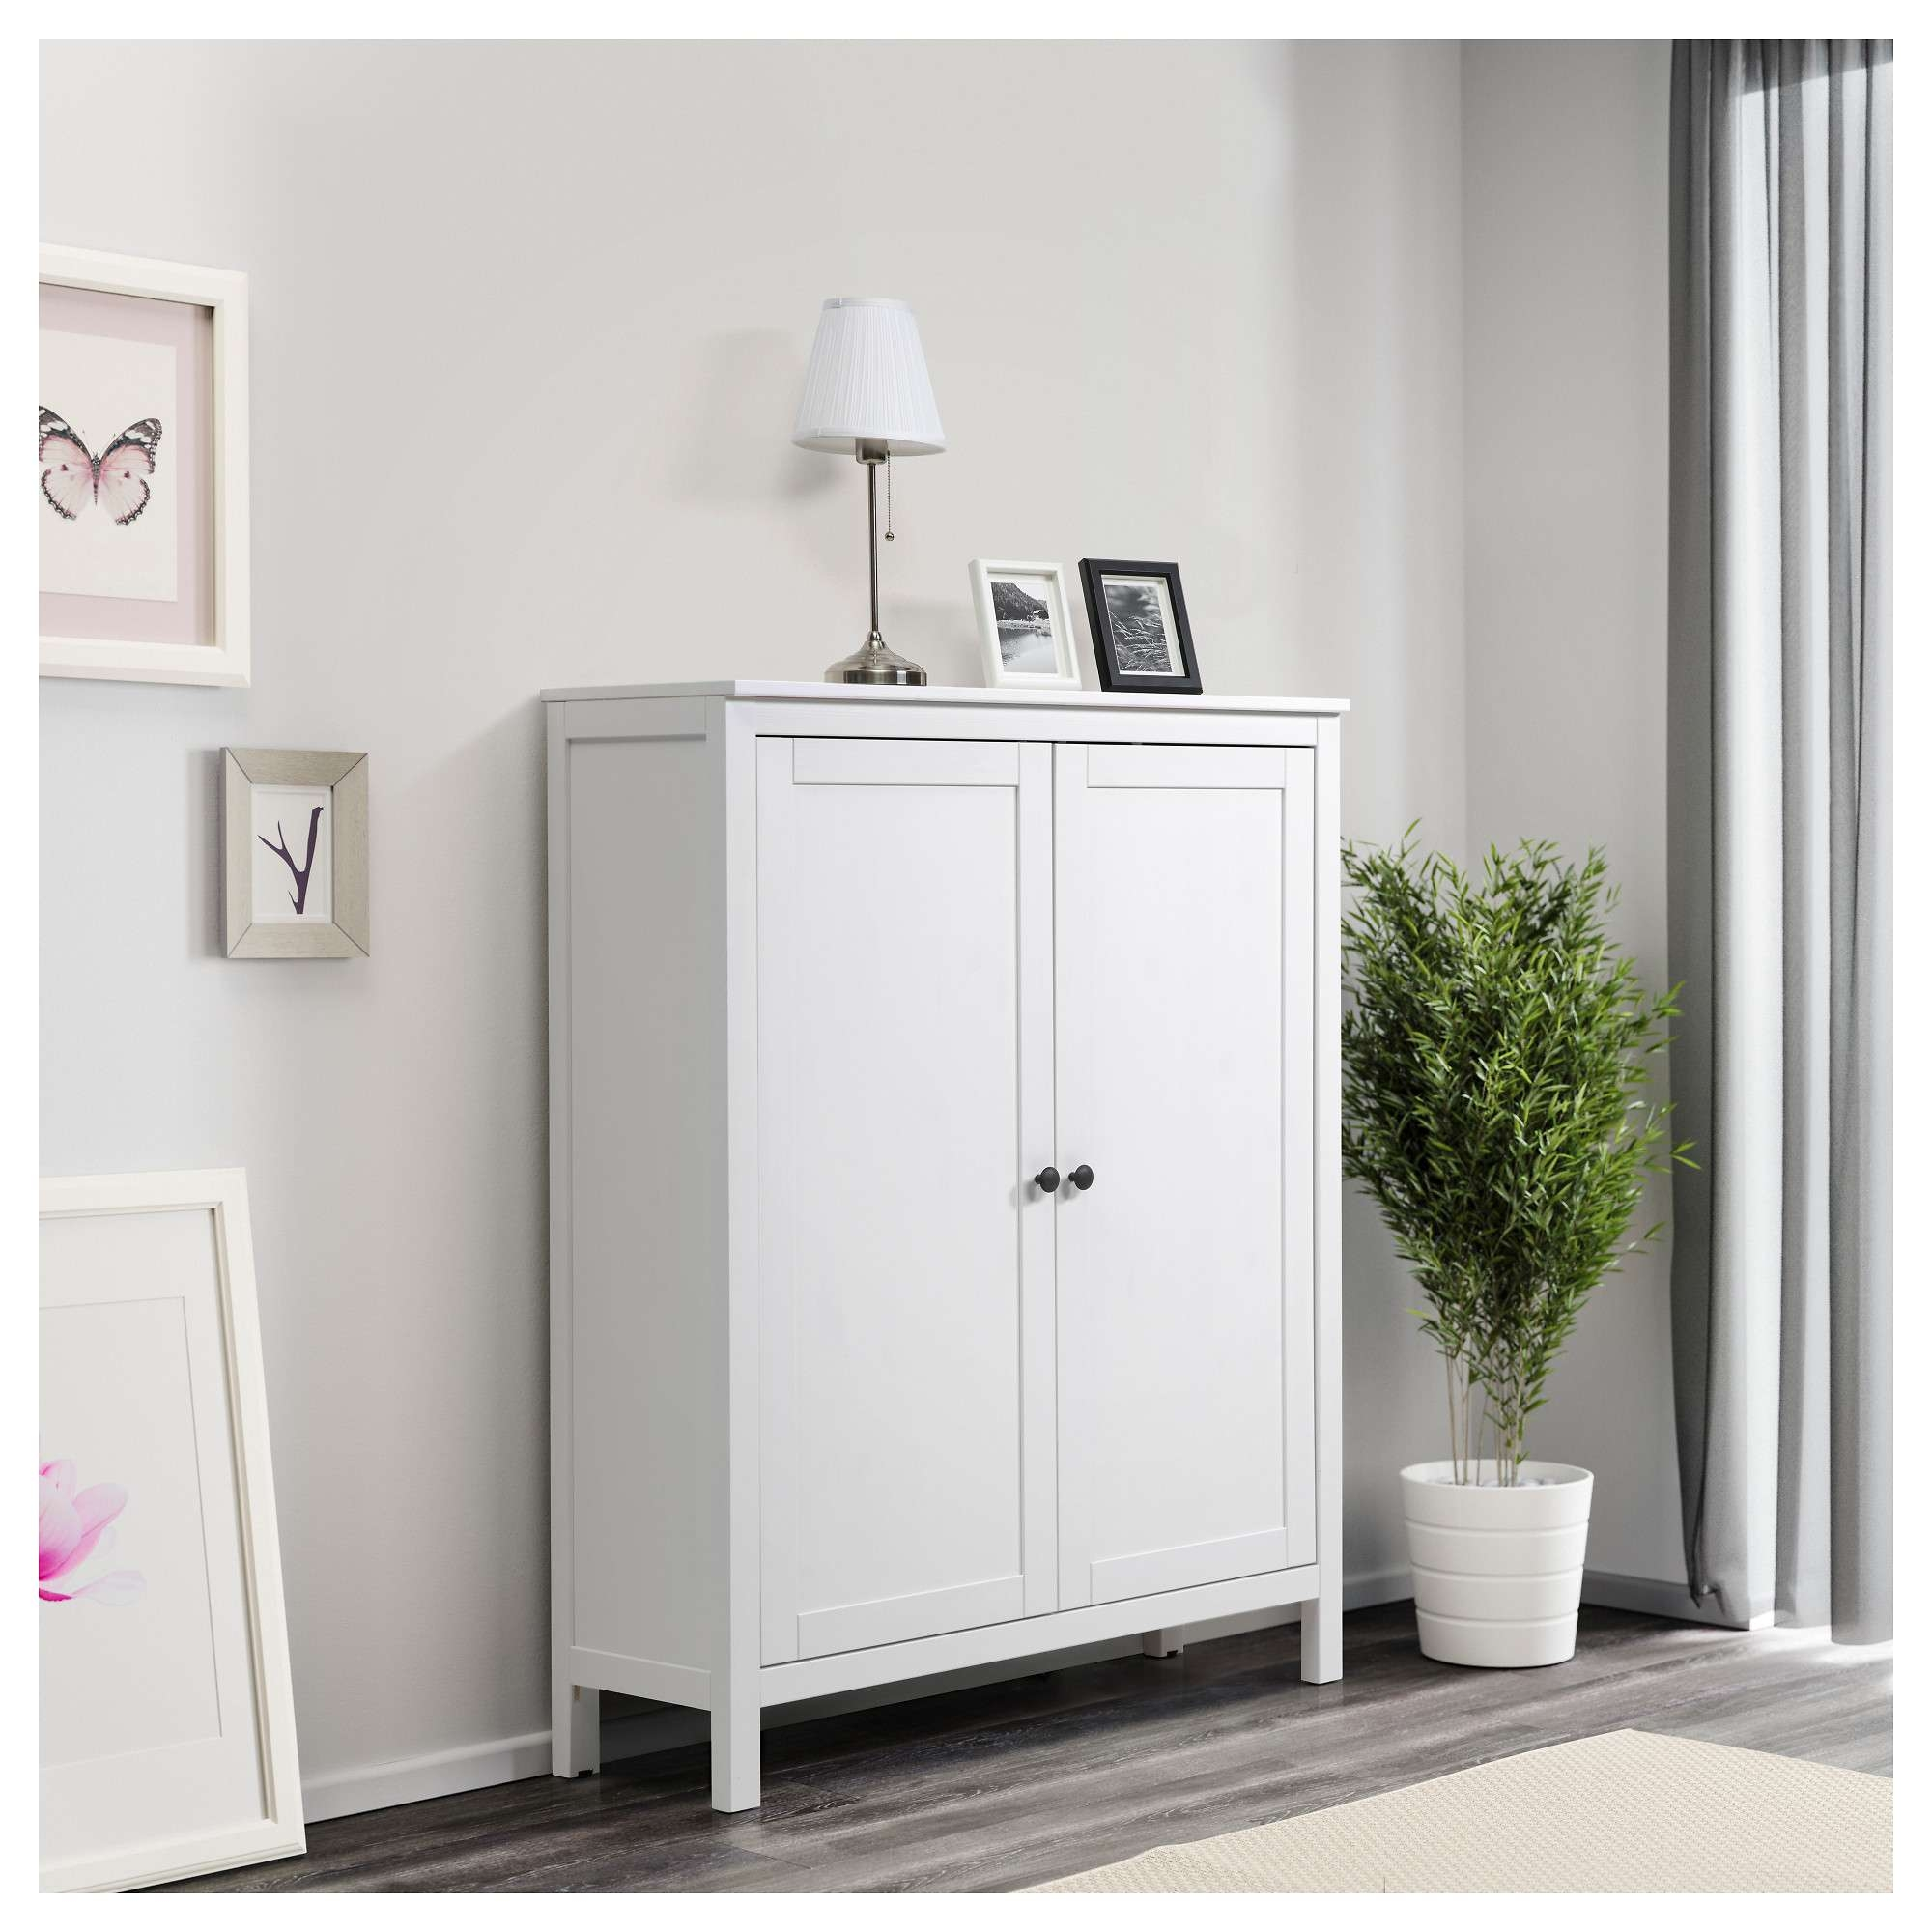 Hemnes Cabinet With 2 Doors White Stain 99X130 Cm – Ikea For Ikea Hemnes Sideboards (View 3 of 20)